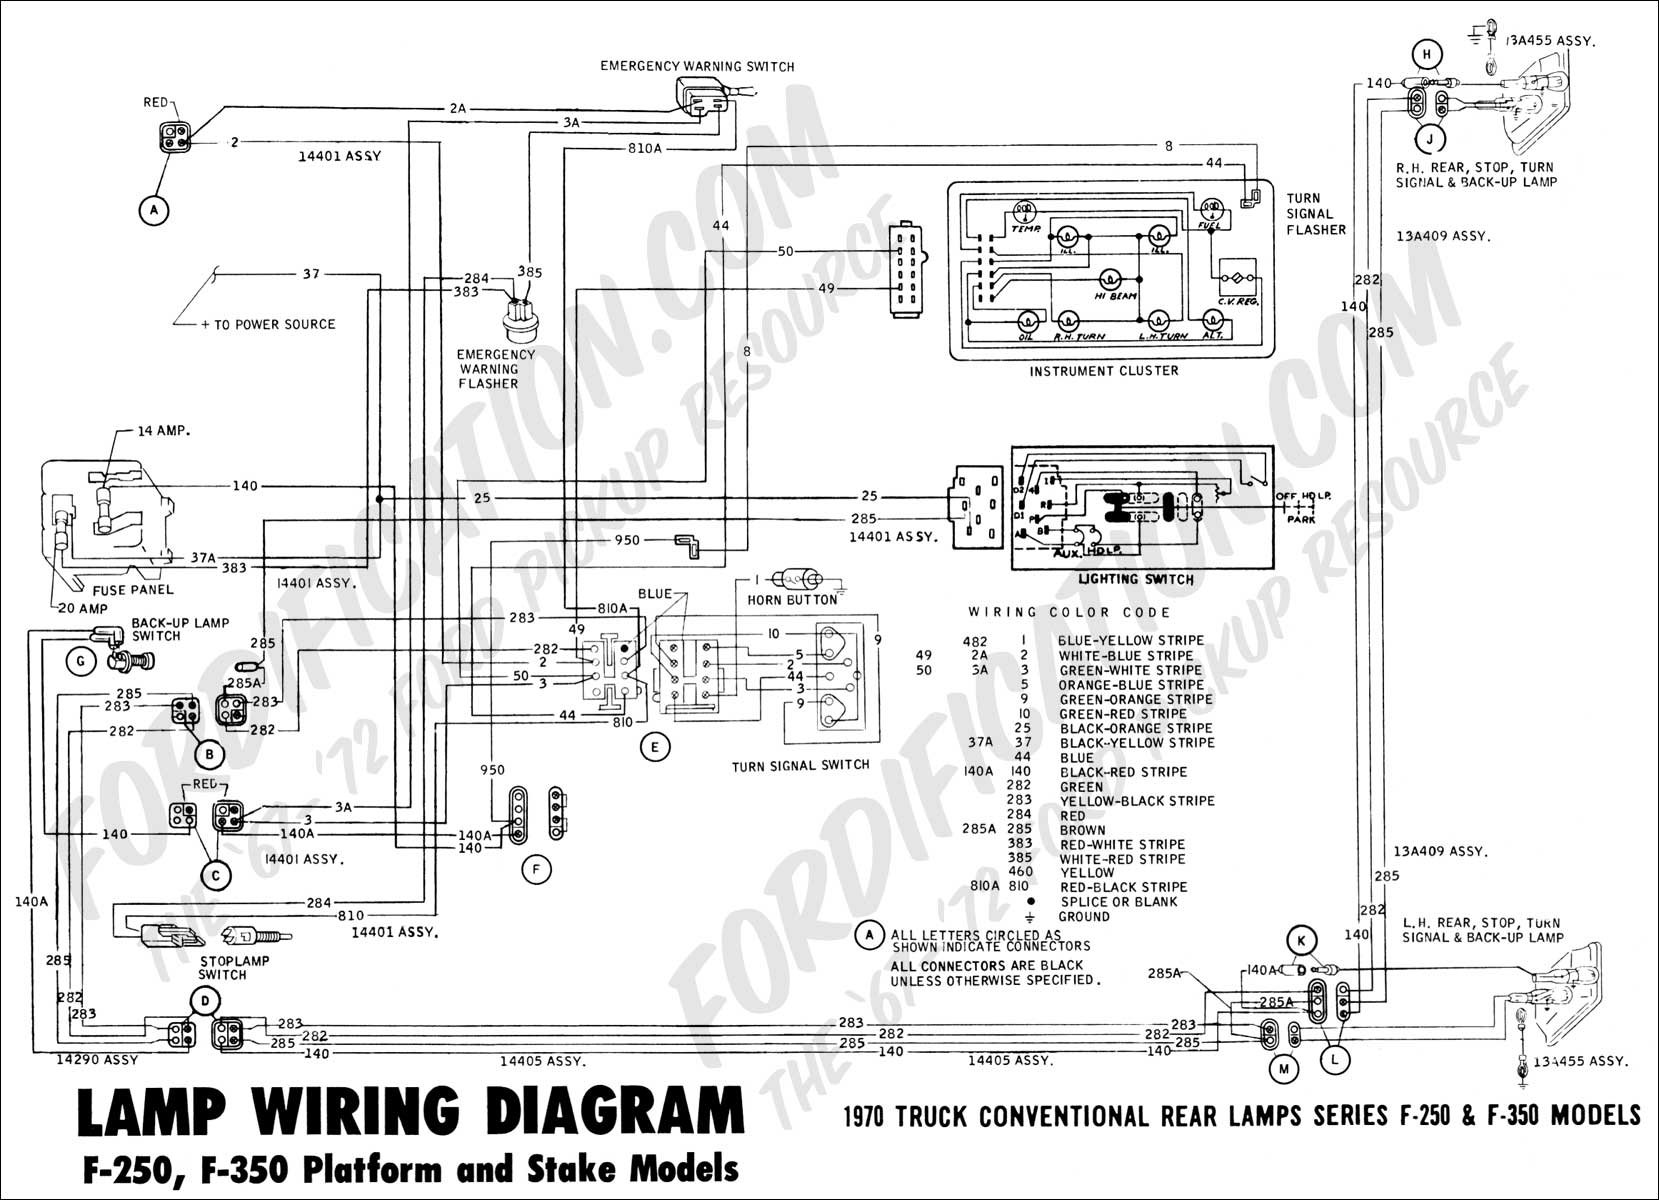 ford truck technical drawings and schematics - section h - wiring ...  fordification.com